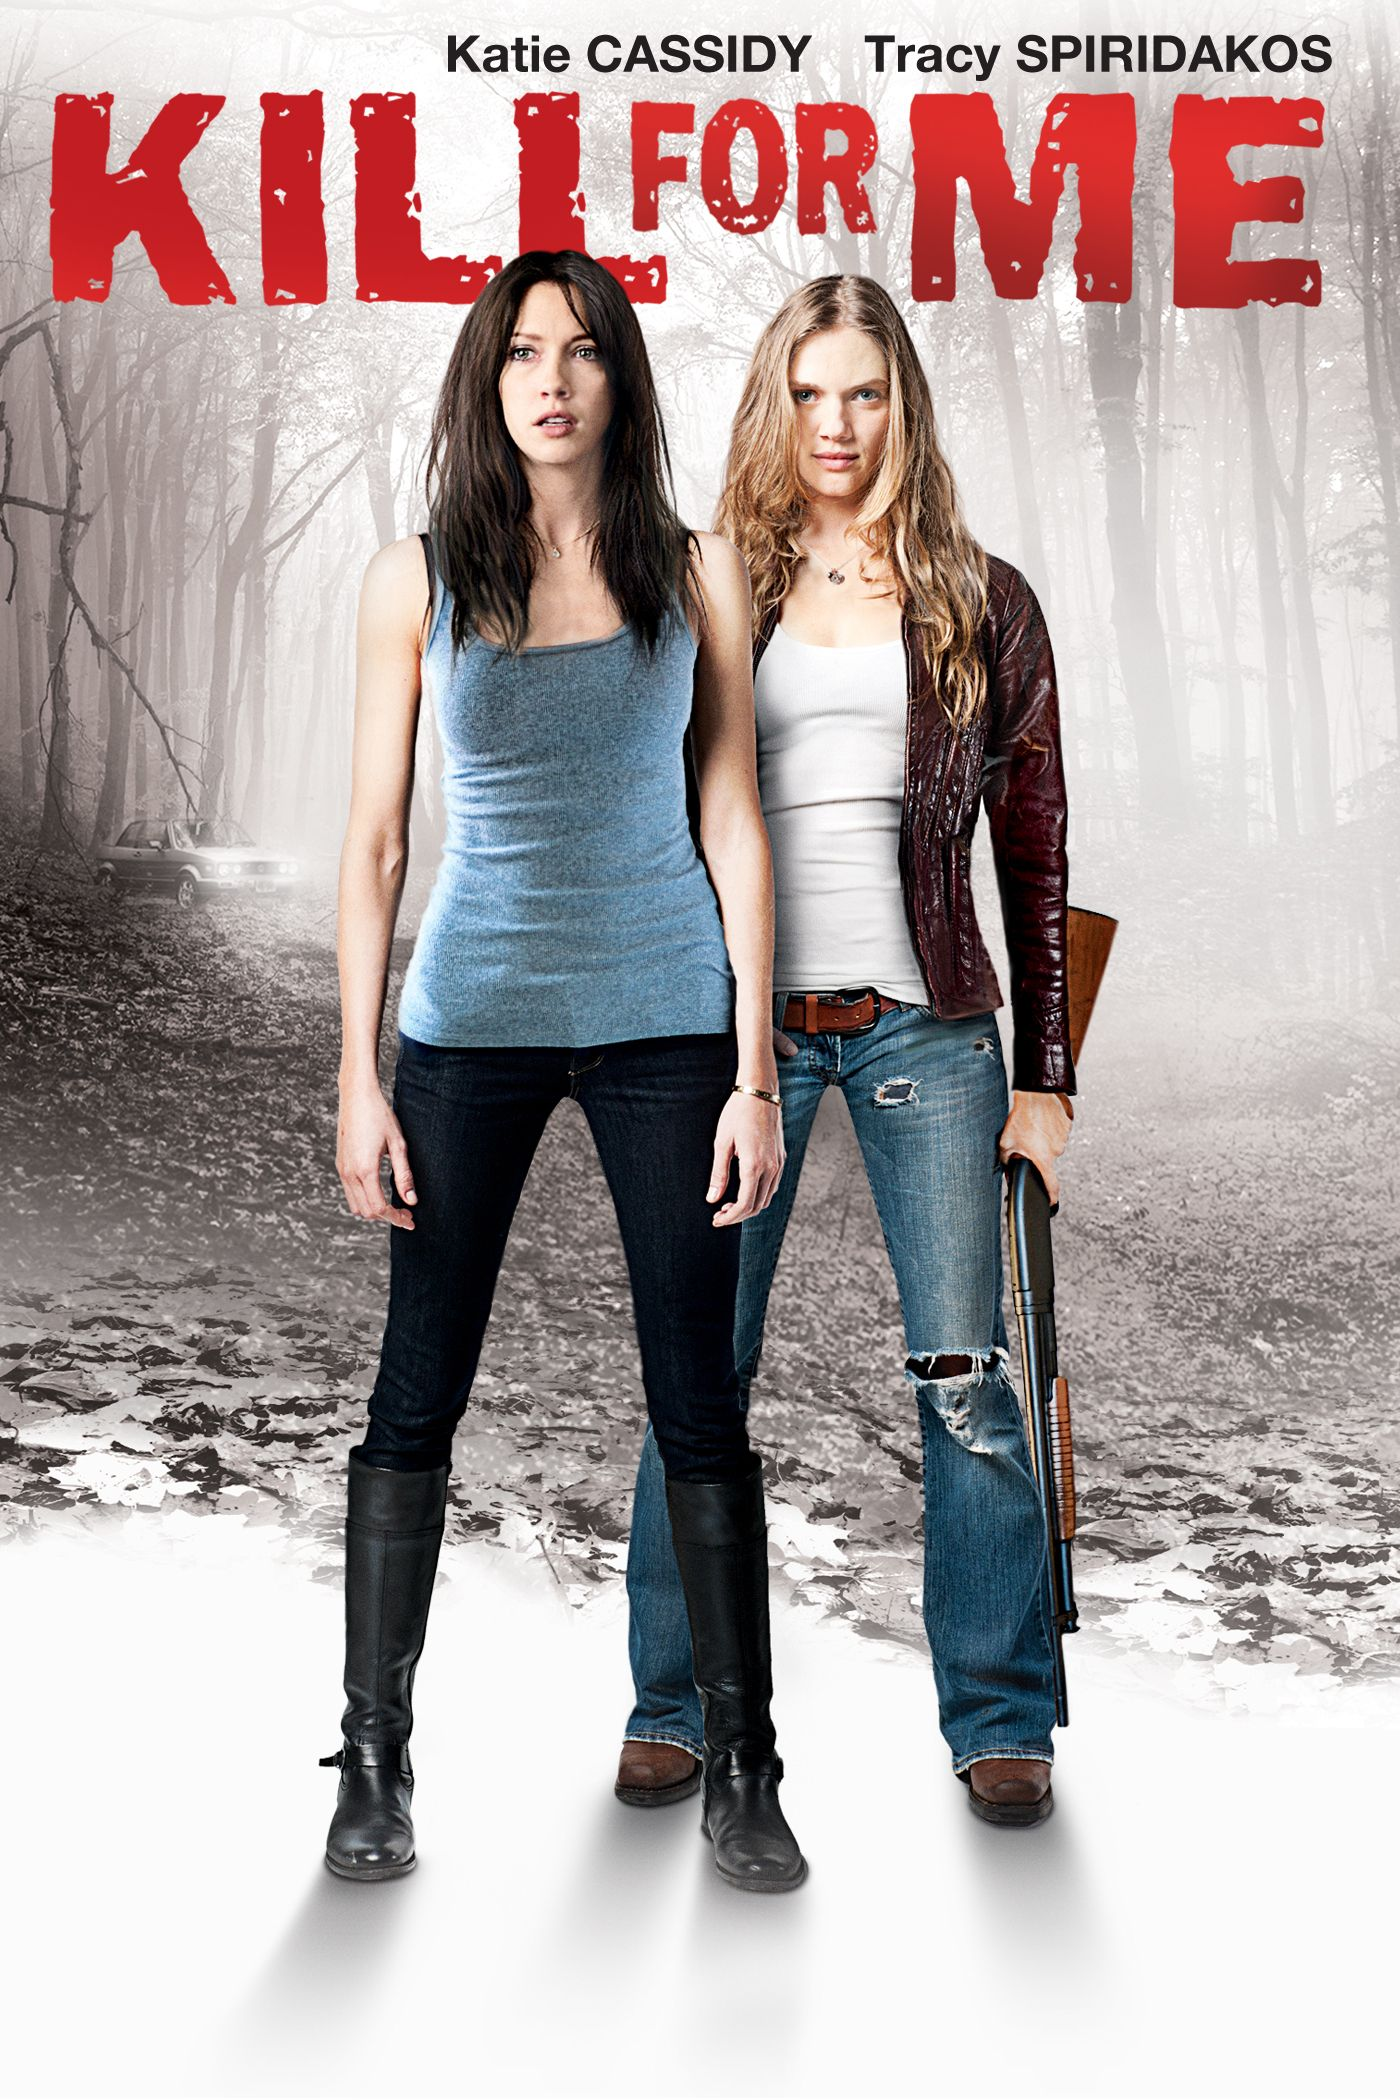 Kill for Me - Promotional art with Katie Cassidy & Tracy